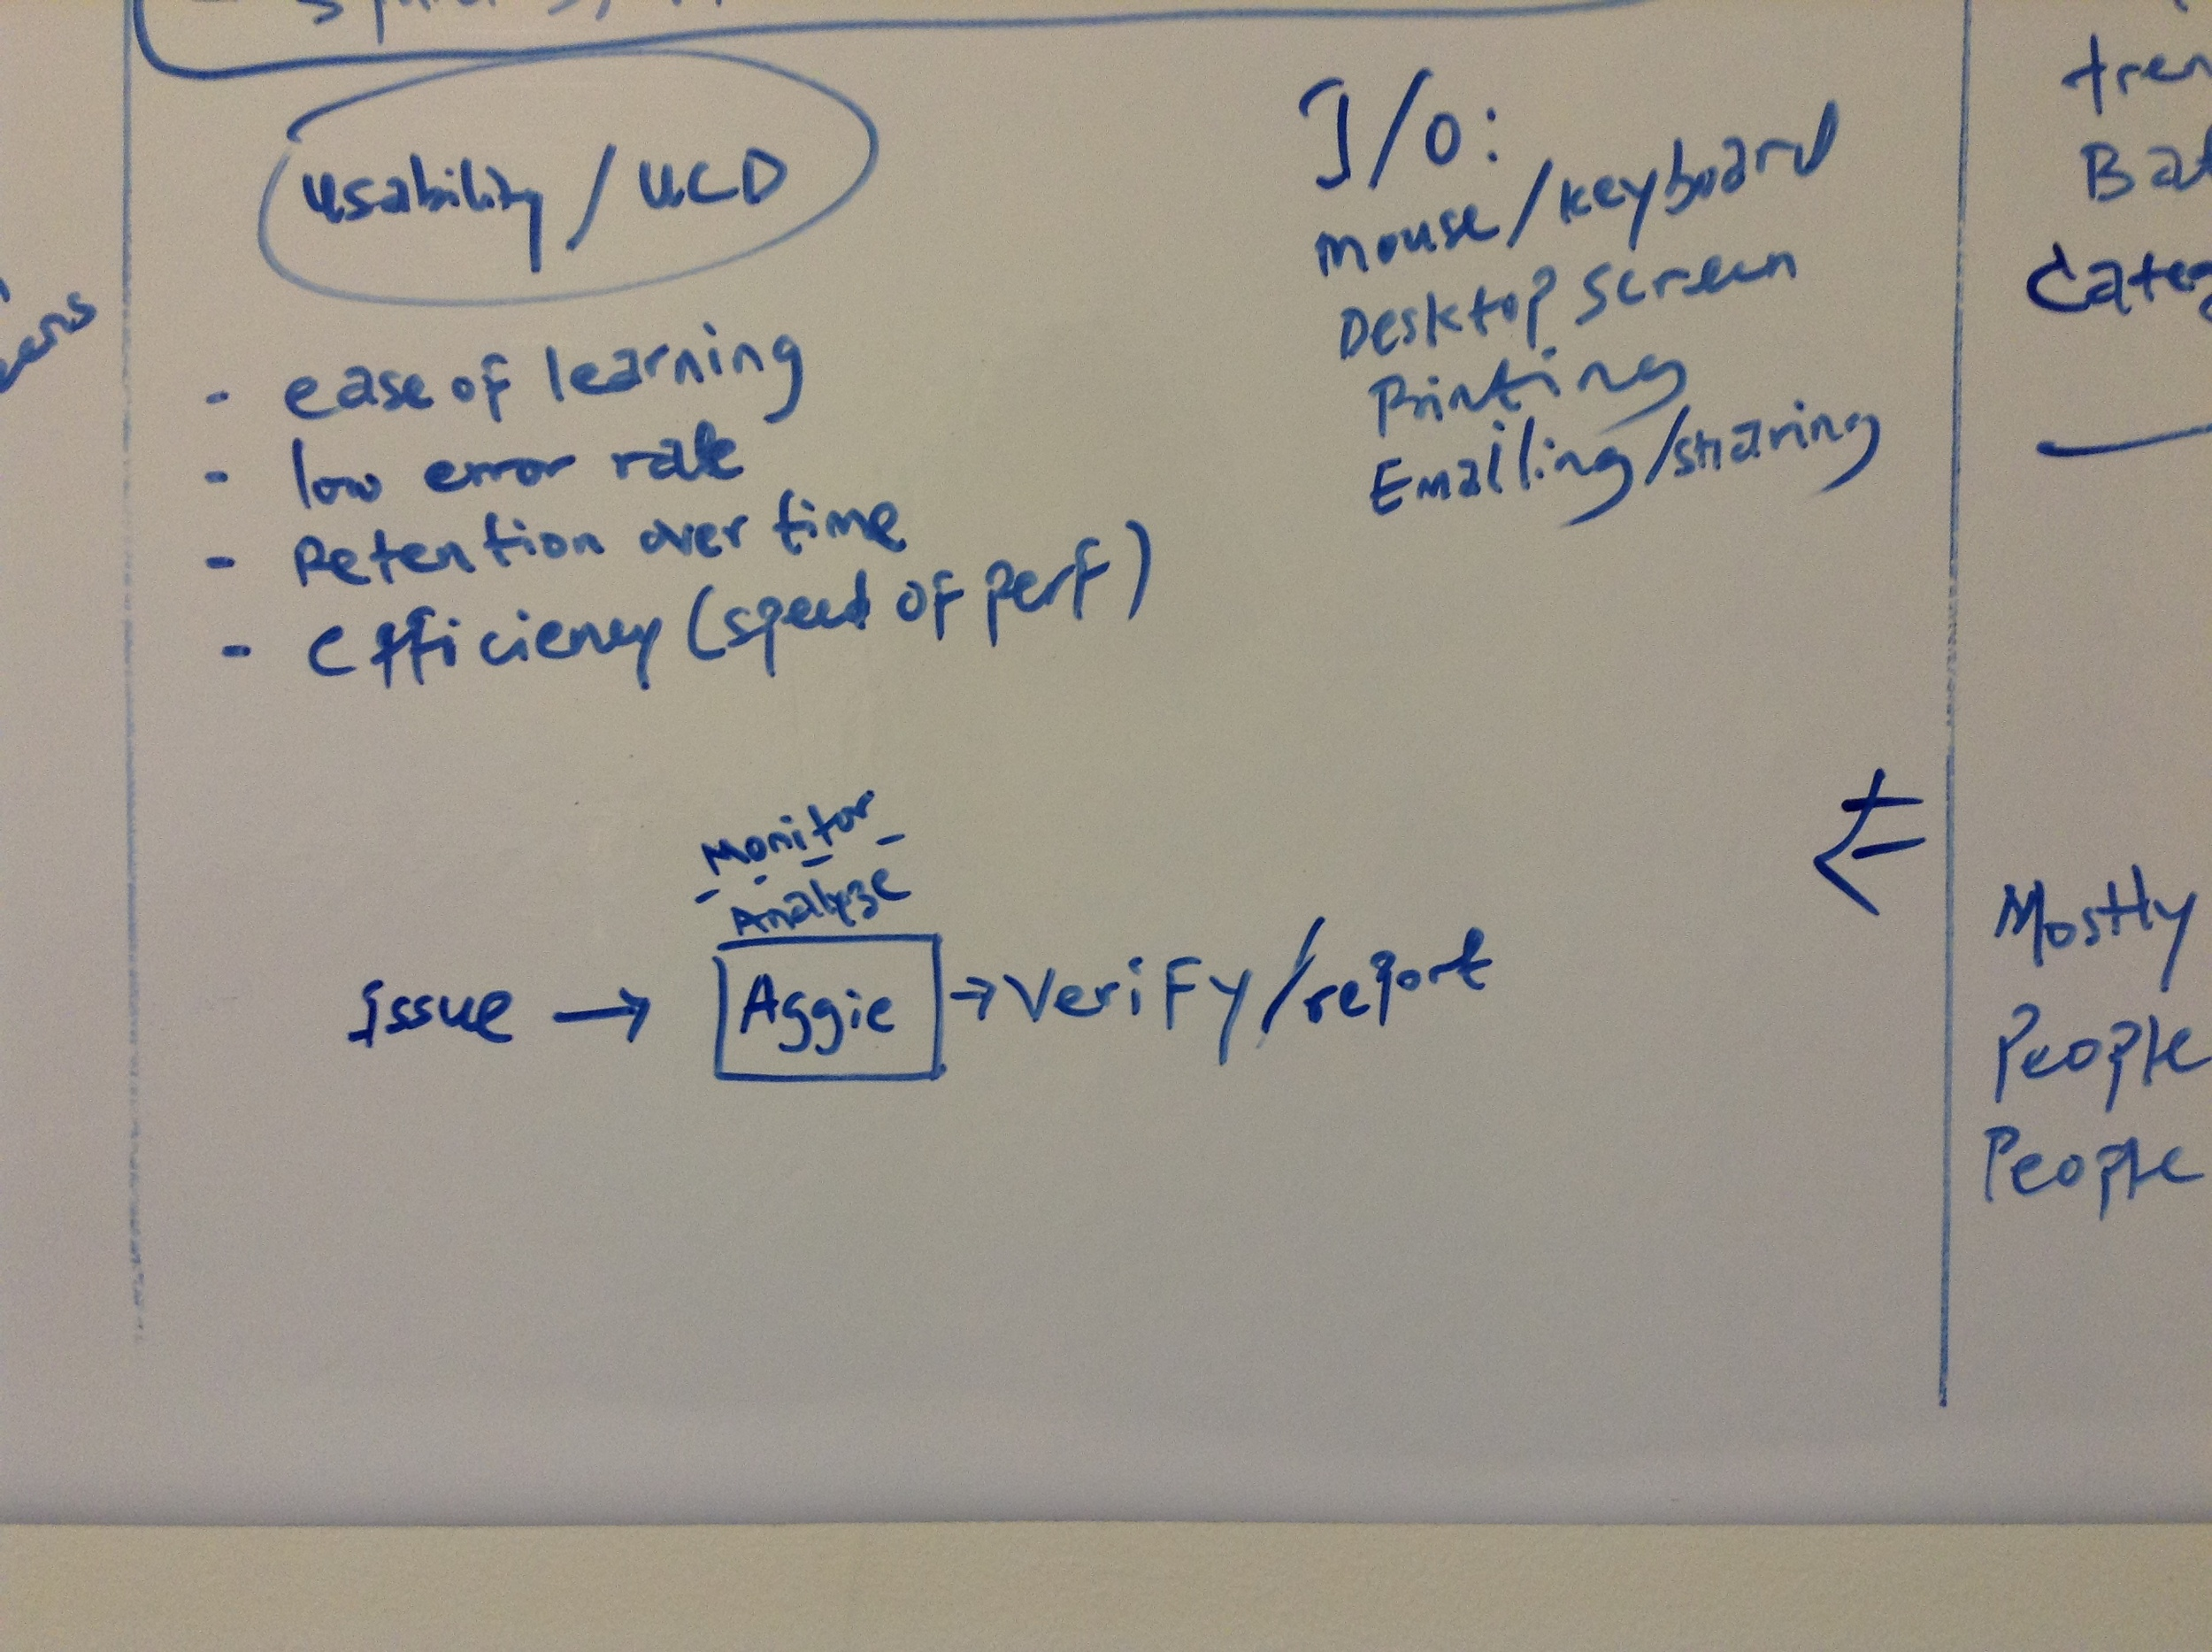 More work environment analysis and usability reqs